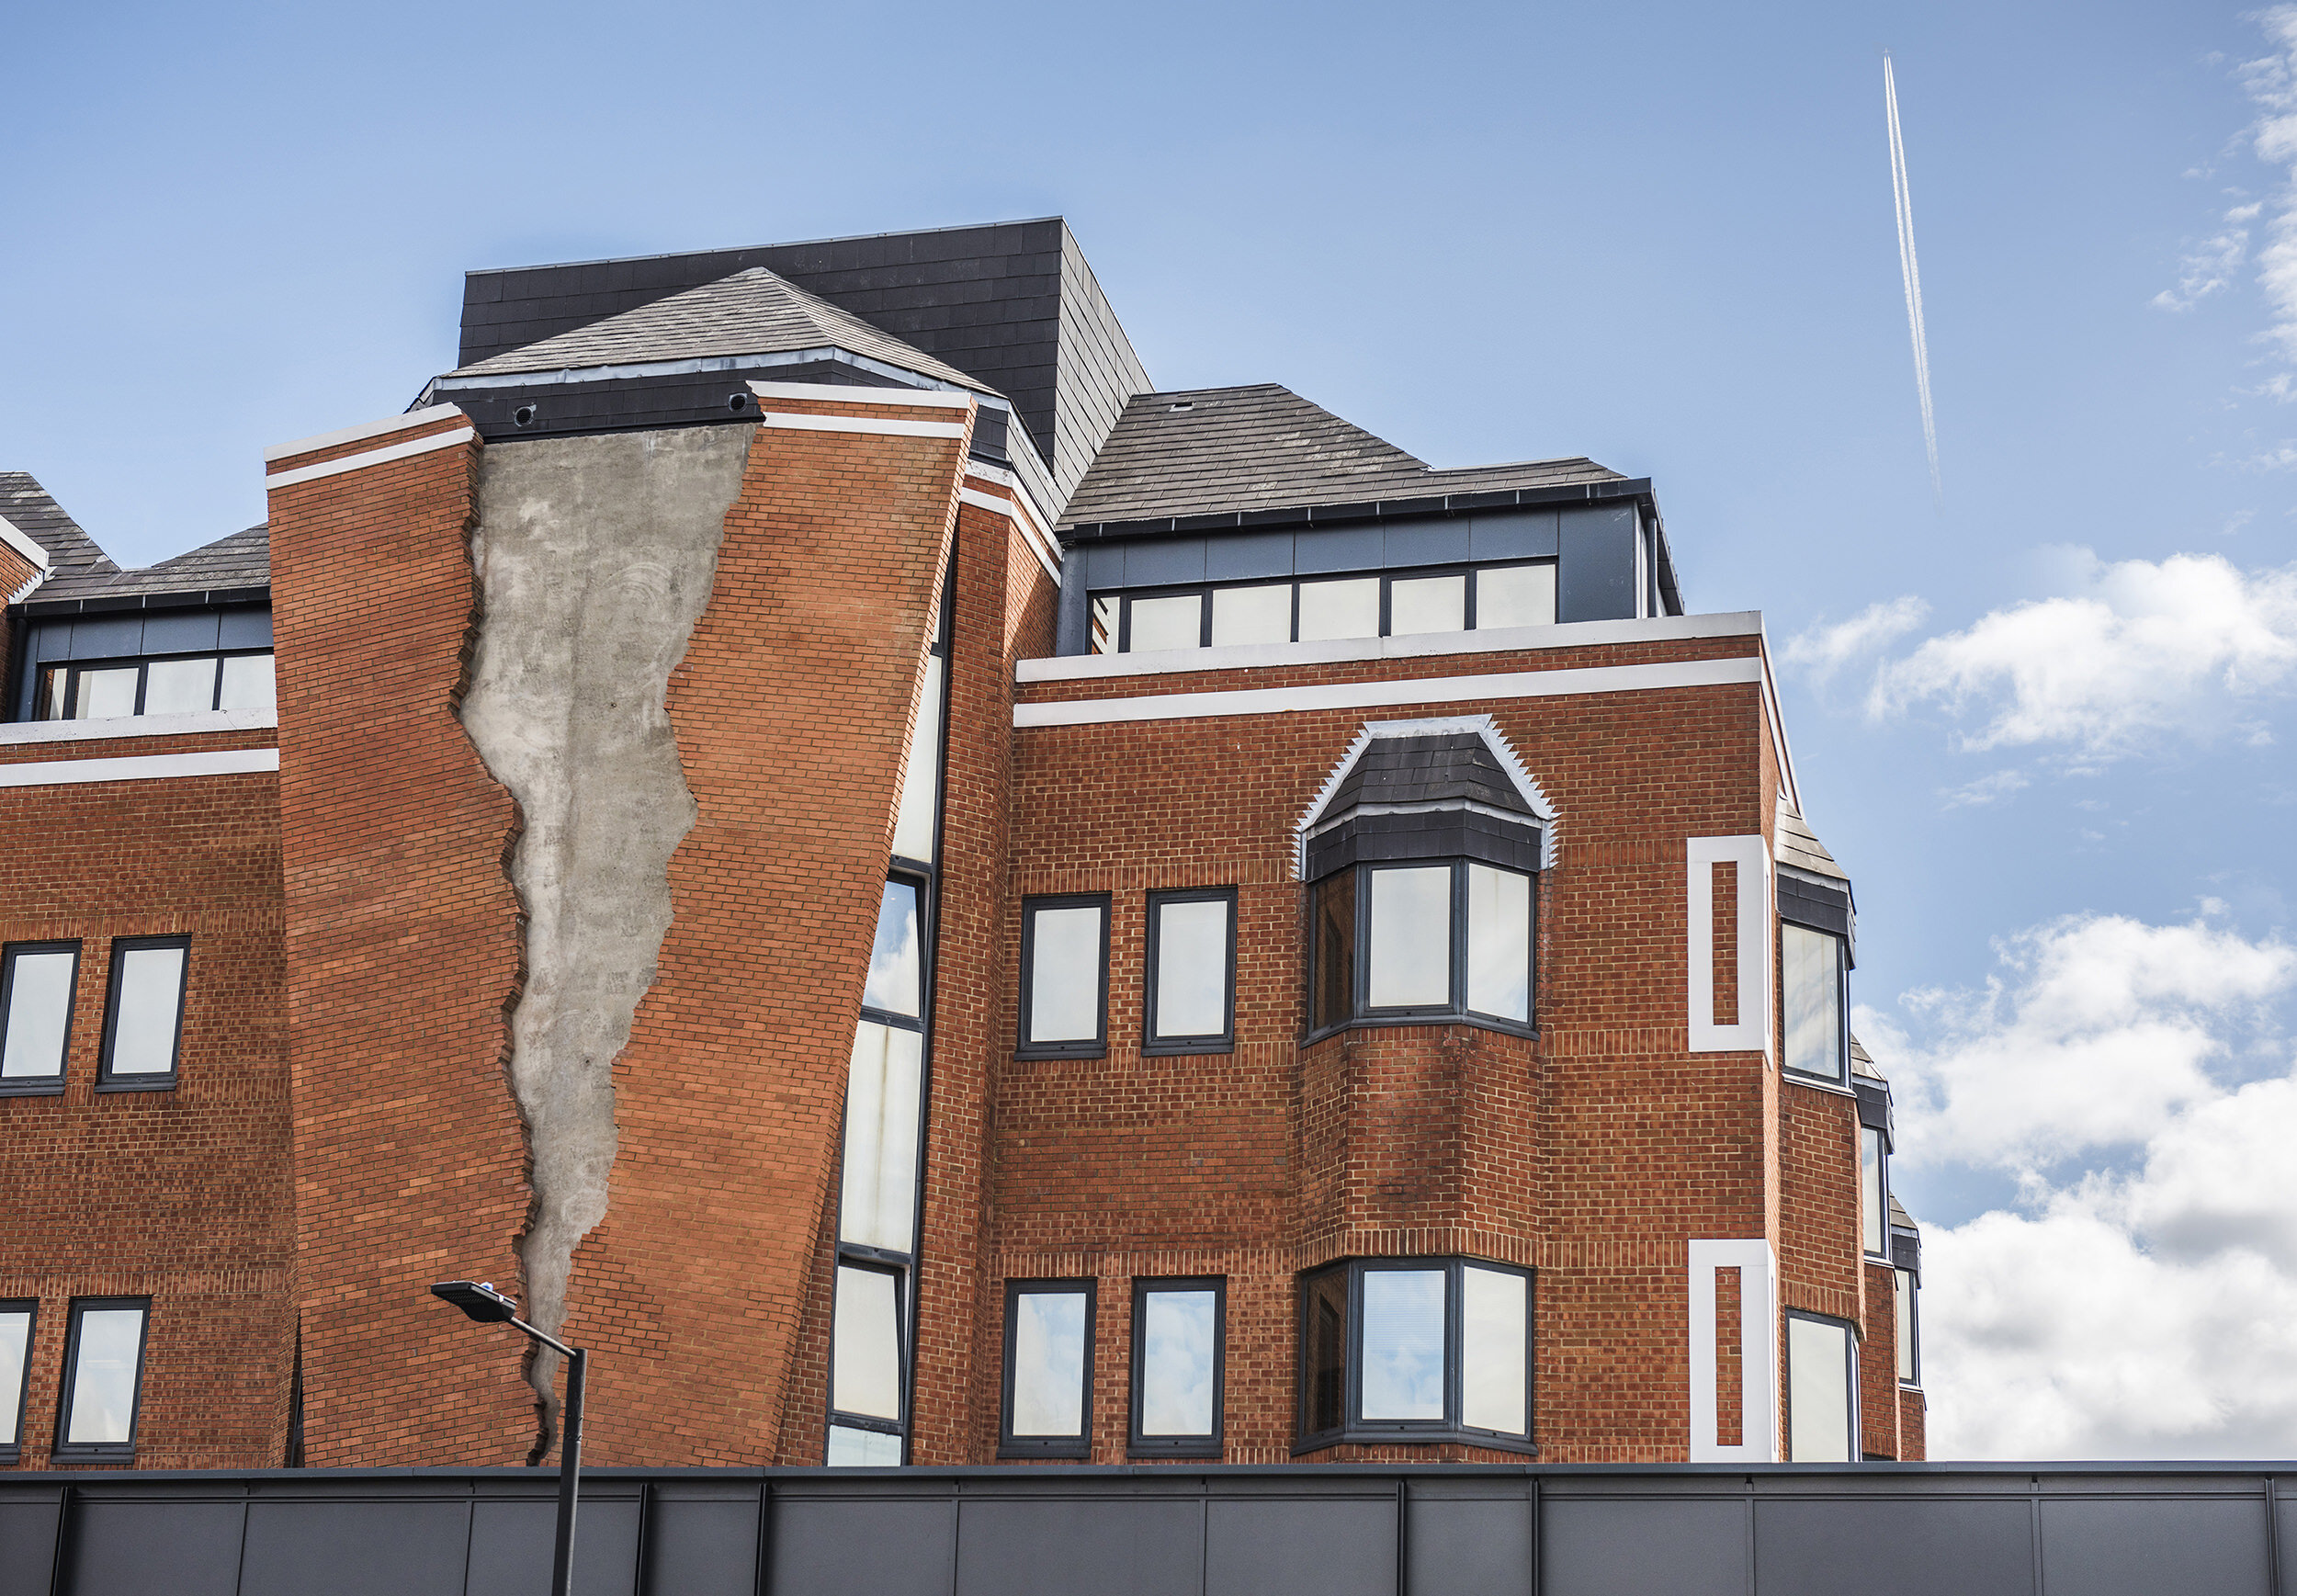 1. Alex Chinneck - Six pins and half a dozen needles - Image by Charles Emerson.jpeg